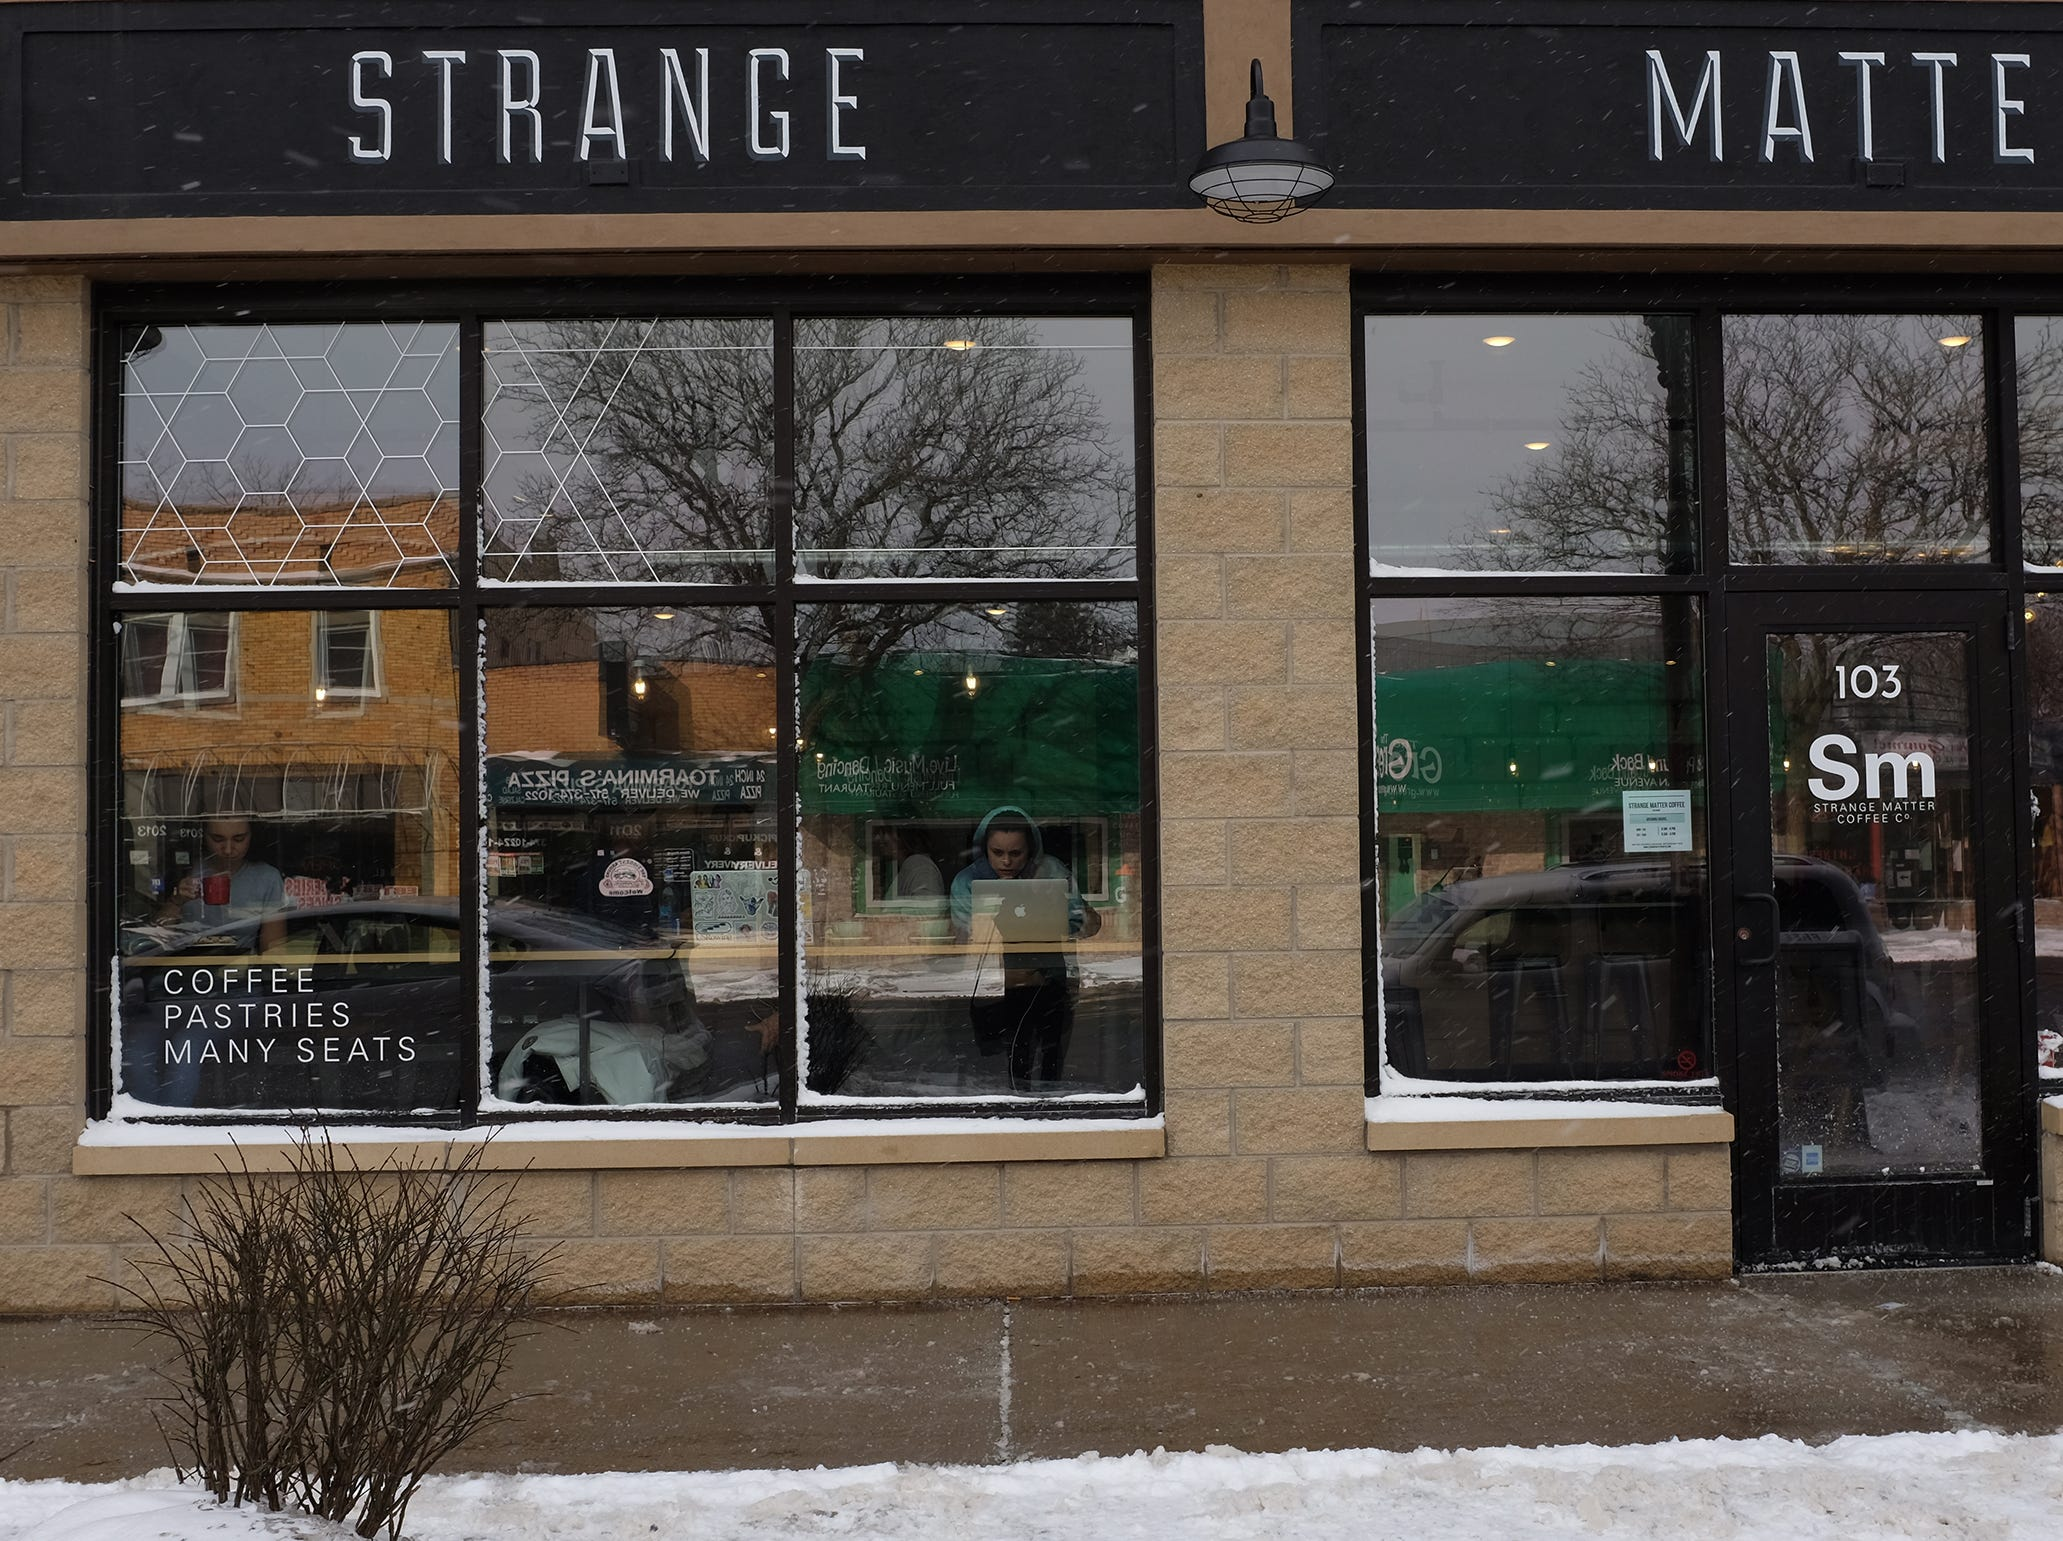 Strange Matter Coffee on Michigan Avenue is now located in The Venue across the street from where it used to be.